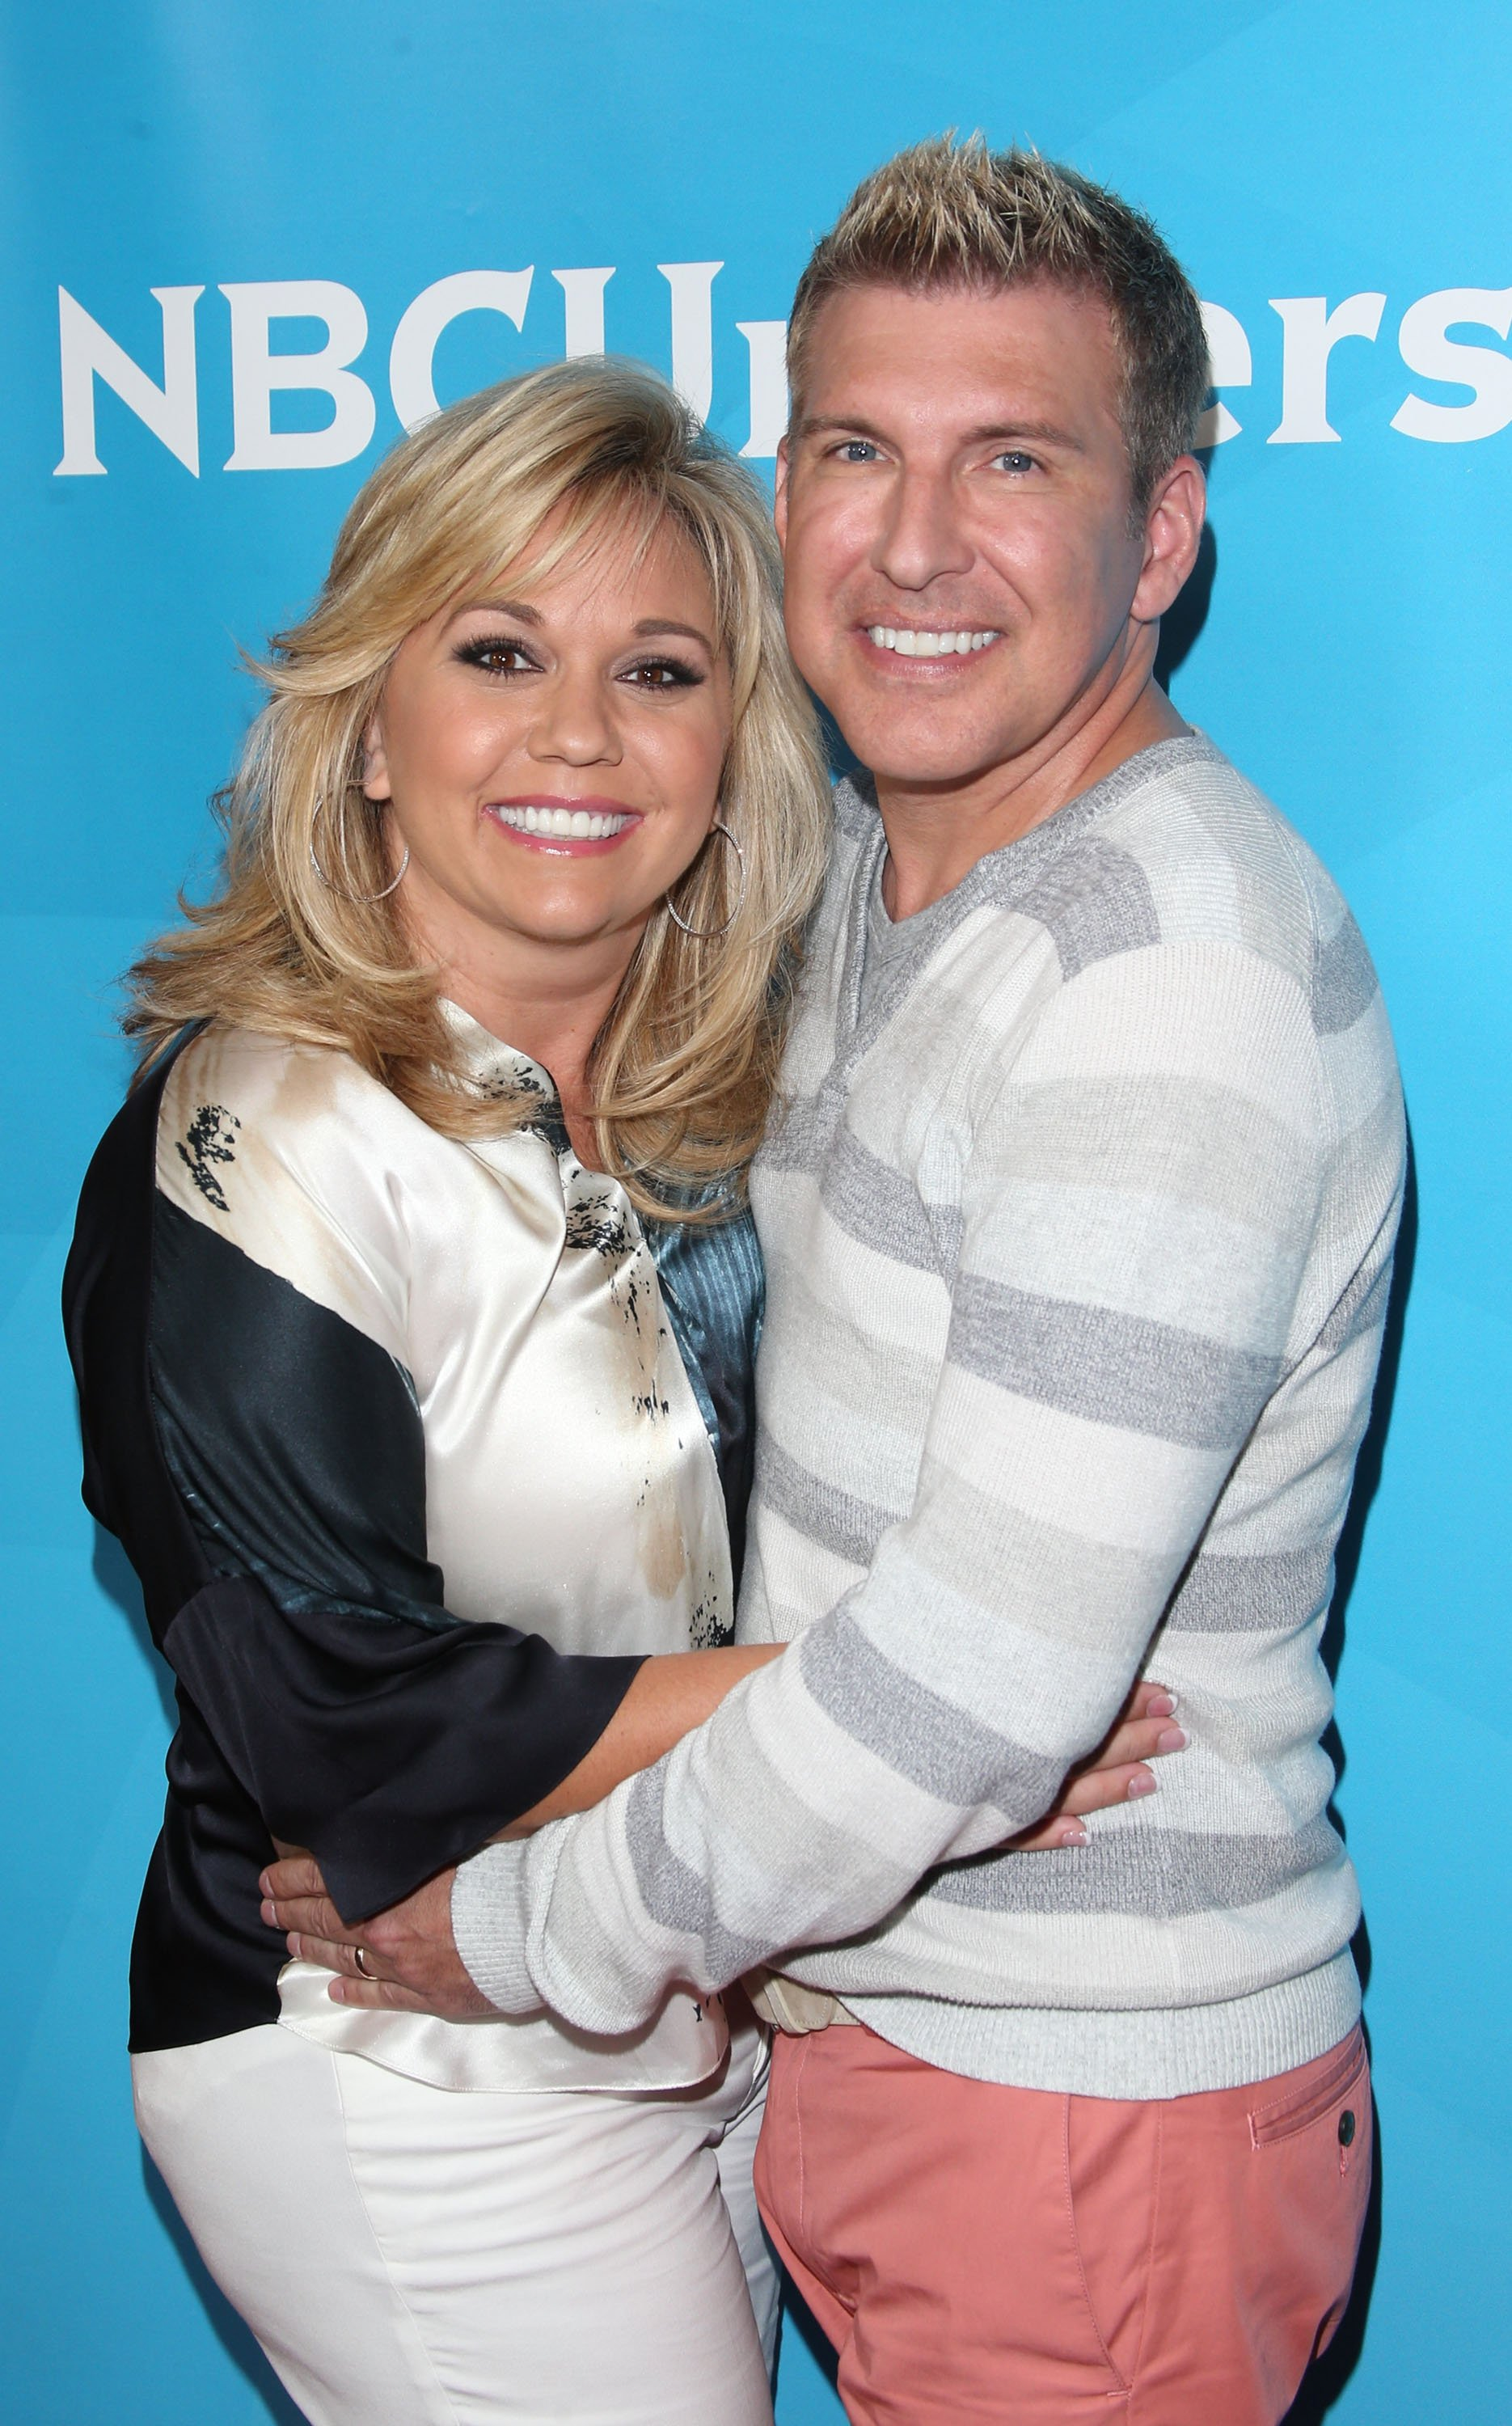 Julie and Todd Chrisley at the Summer TCA Tour held at The Beverly Hilton Hotel on July 14, 2014 in California | Photo: Getty Images